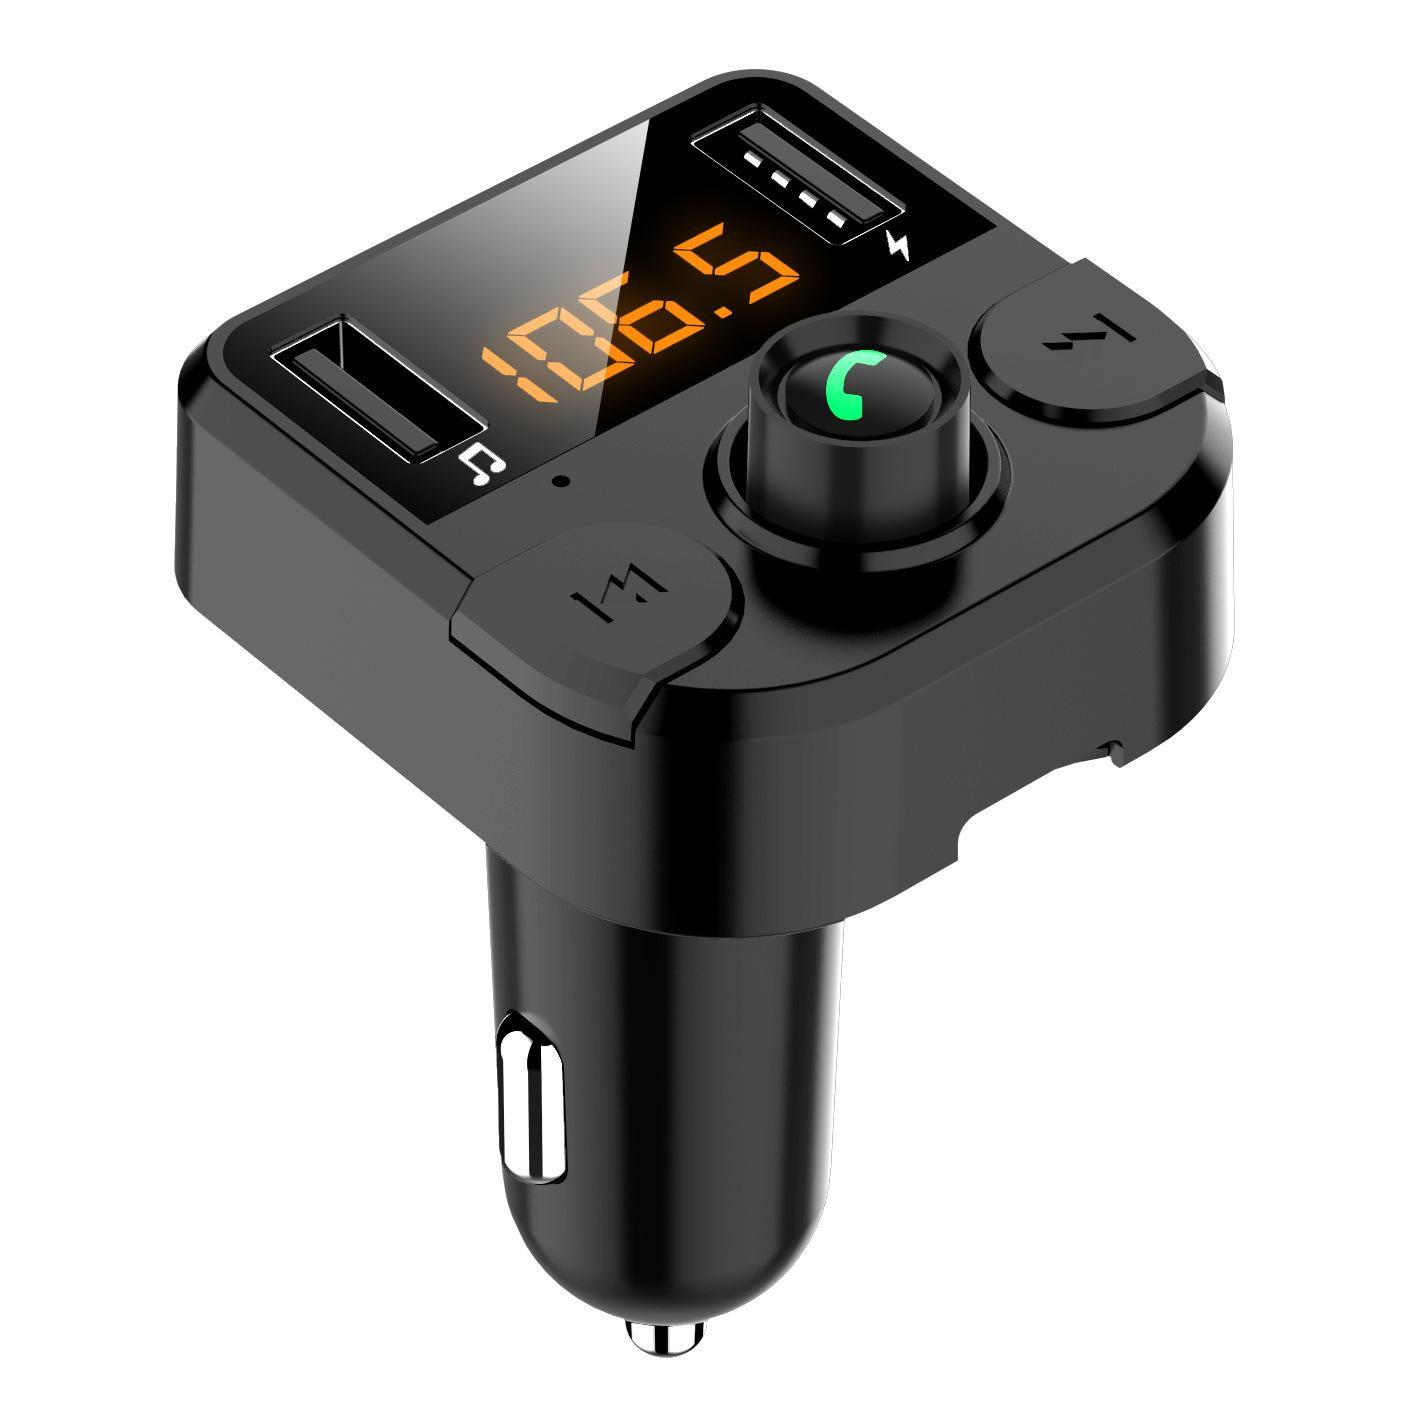 BT36B FM Transmitter Hands-free Orange LED Screen Noise Elimination Function Bluetooth 5.0 MP3 Player USB Charger for Phone